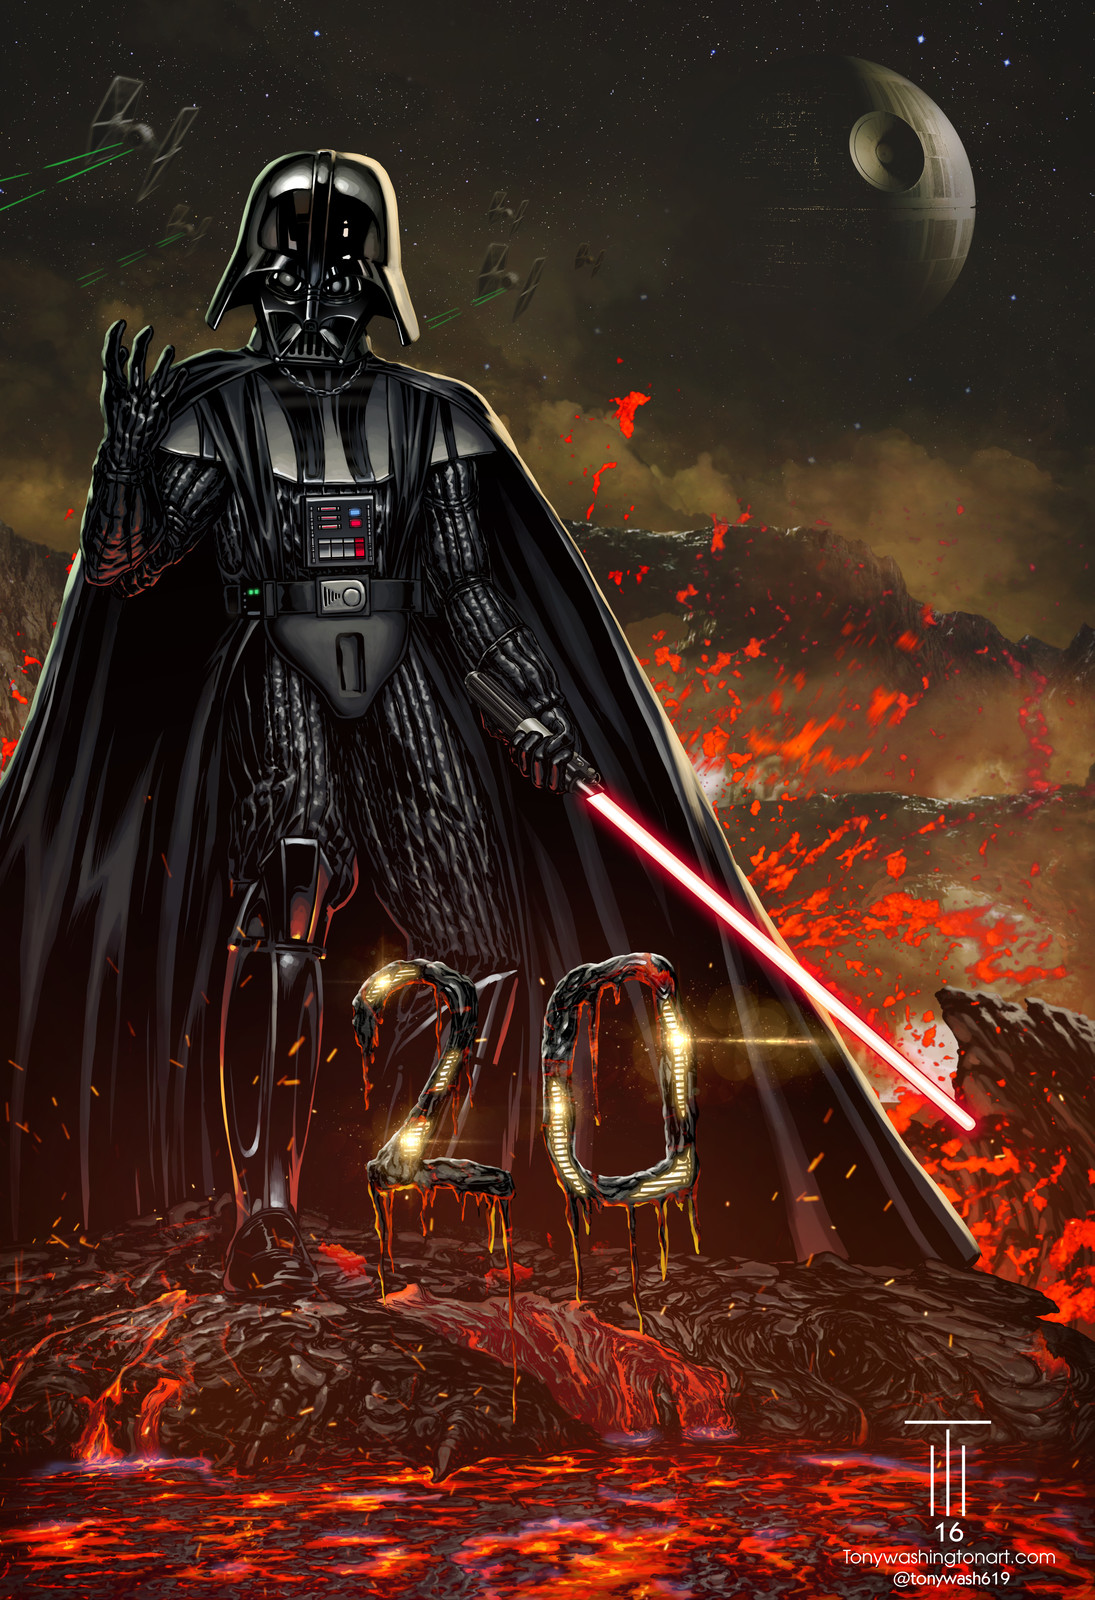 Darth Vader Commission for Dwight Lowrey (San Diego Chargers)